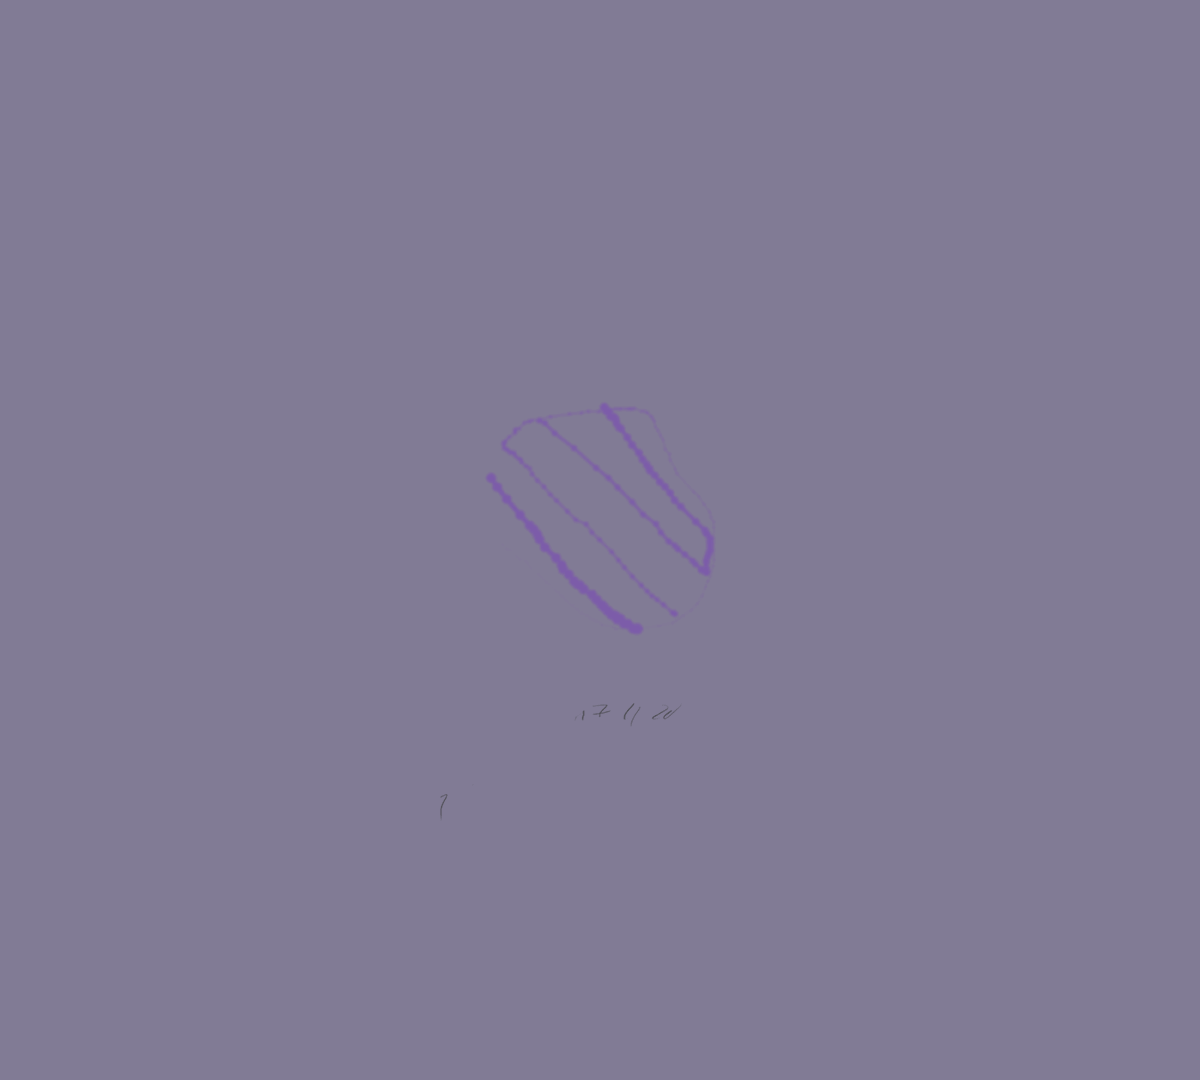 Felt tip browser drawing in quick purple on a cool grey background.